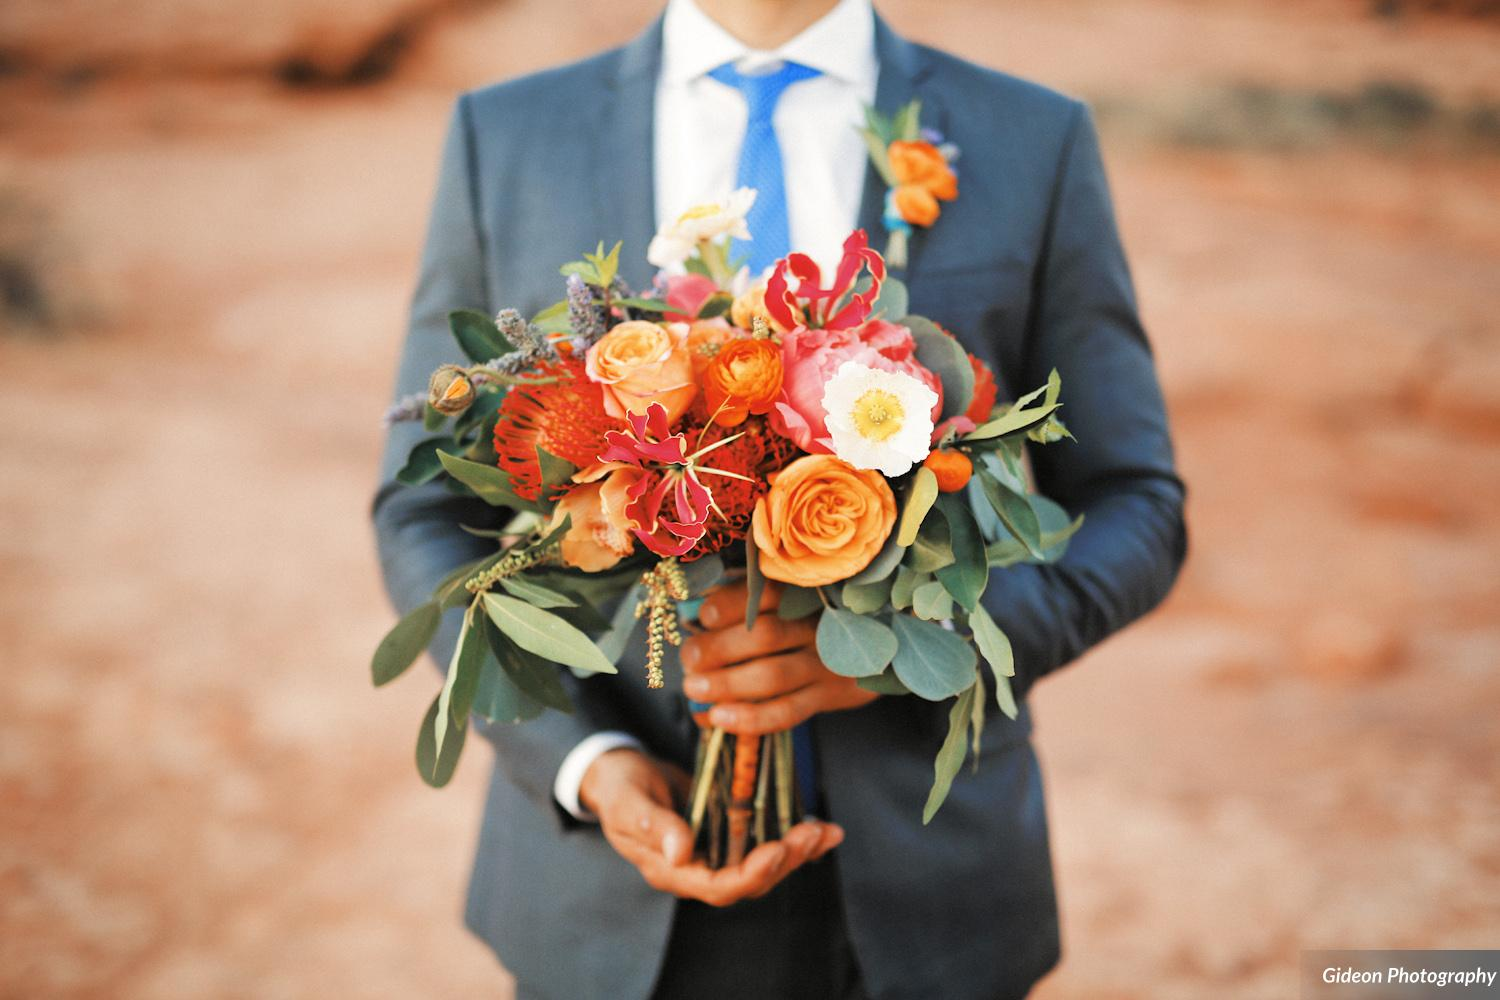 bridal bouquet with gold roses, coral peonies, anemones, gloriosa lilies, and protea